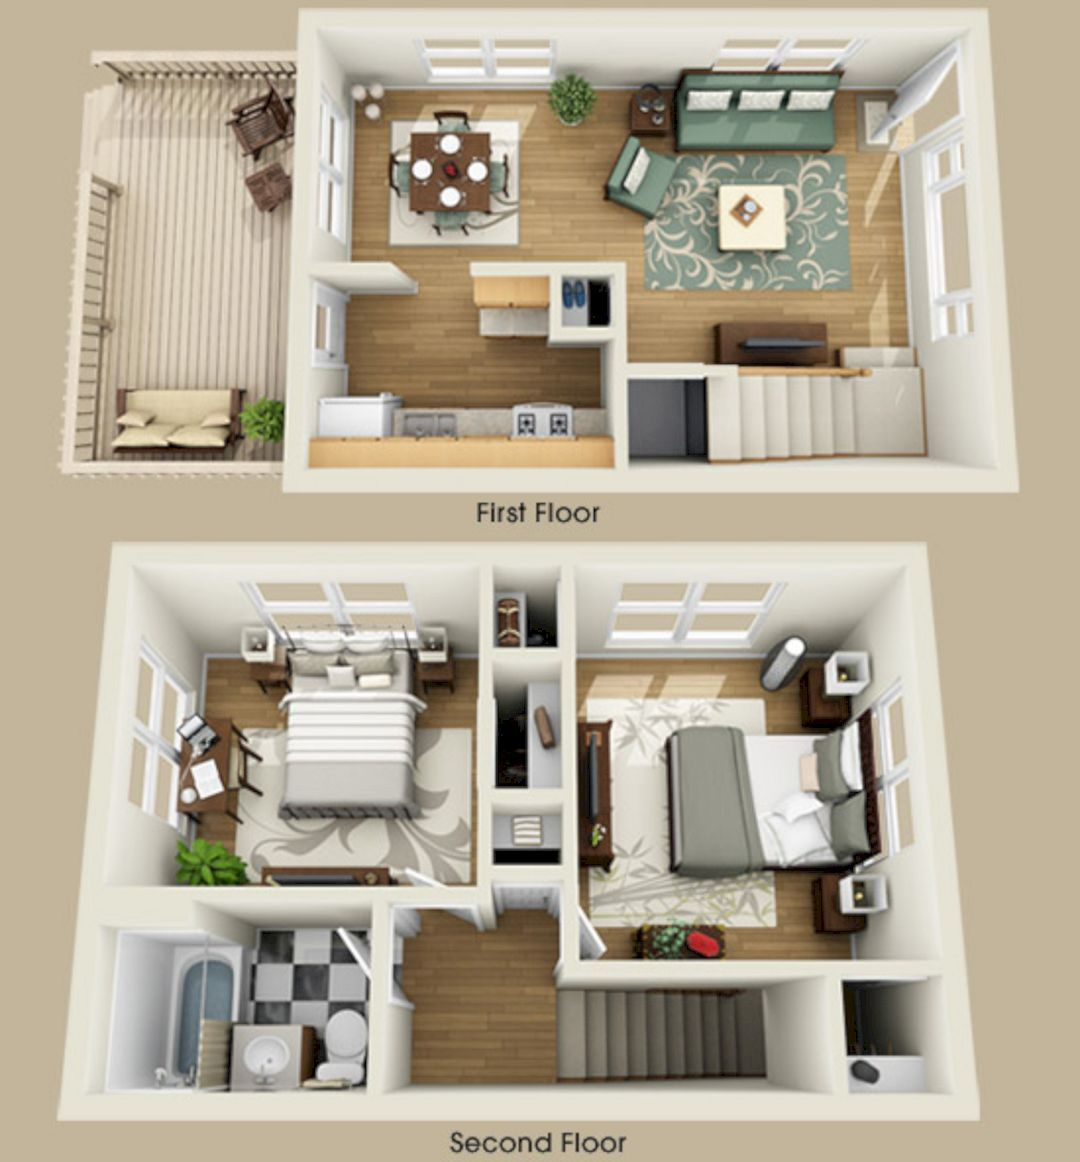 Why Do We Need 3d House Plan Before Starting The Project 3d House Plans Sims House Small House Plans